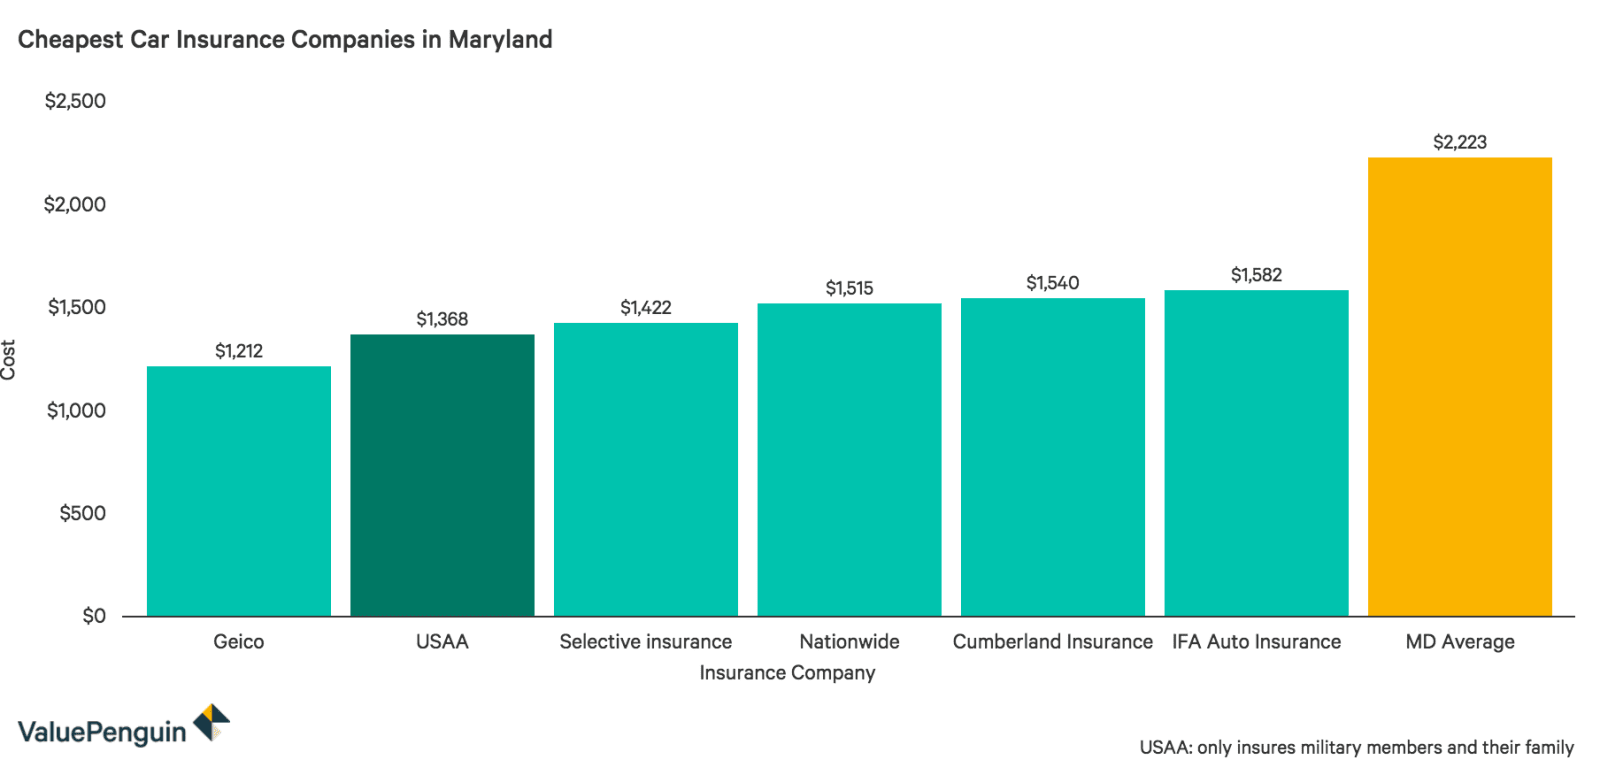 This graph shows the six companies in Maryland with the lowest average annual premiums on average